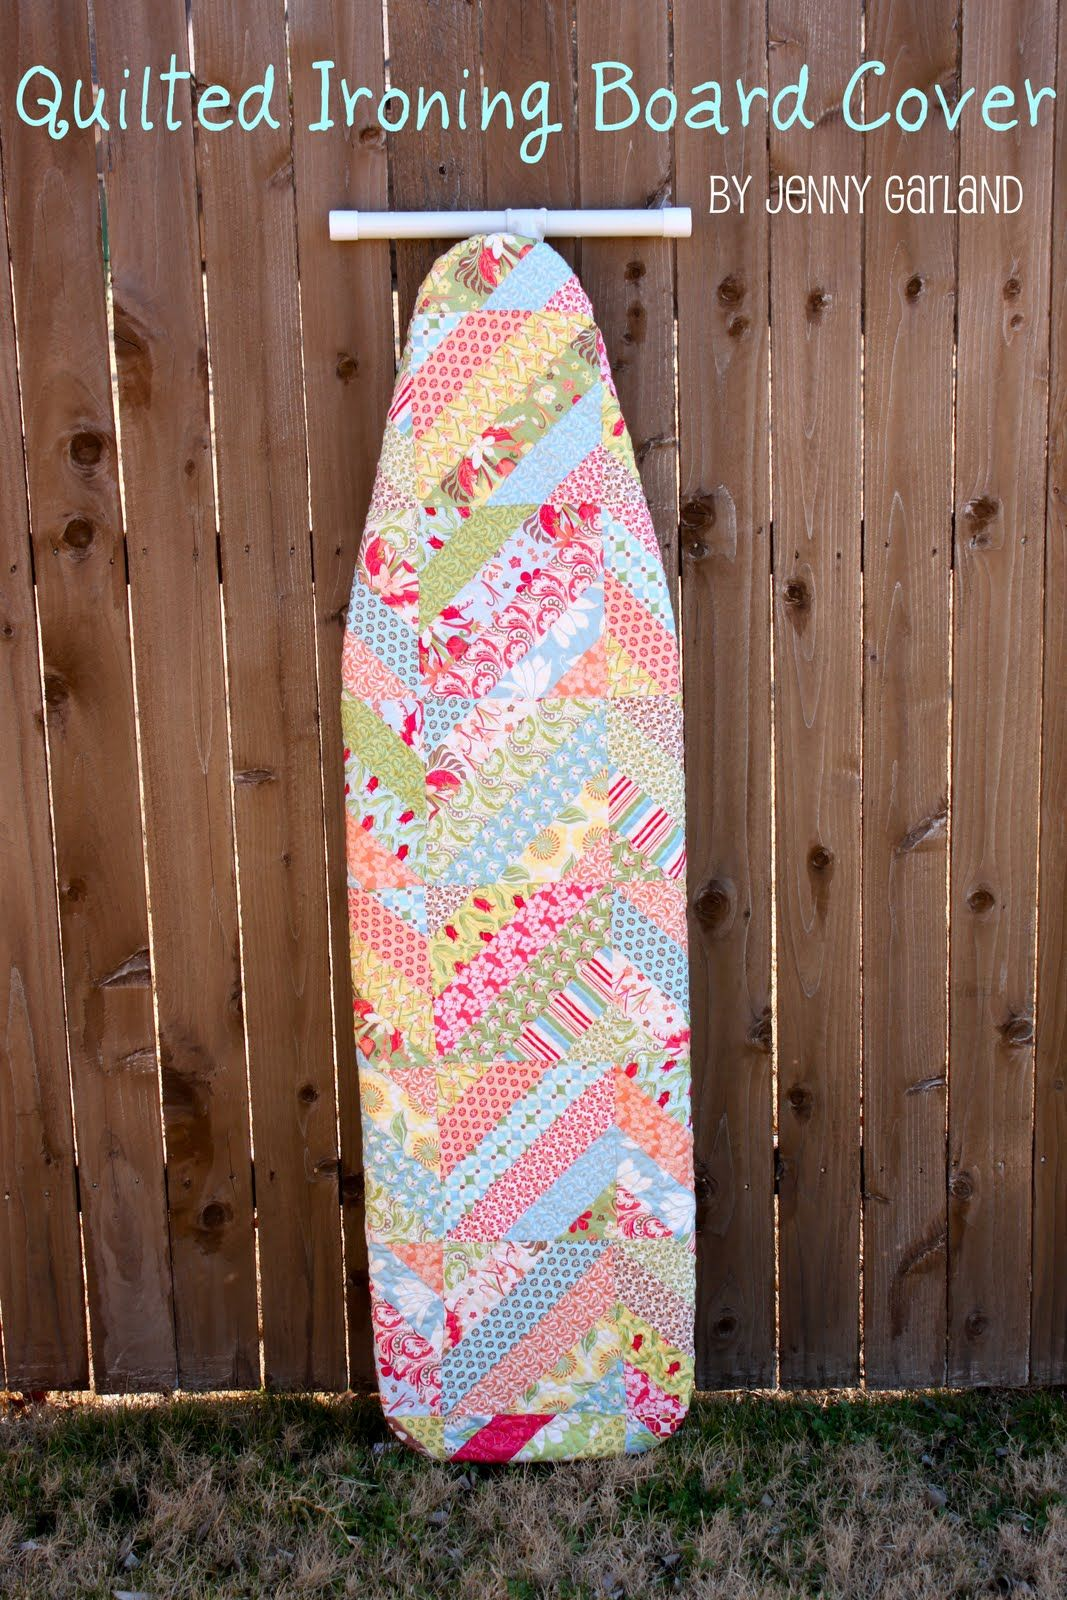 Moda Bake Shop Quilted Ironing Board Cover This Tutorial